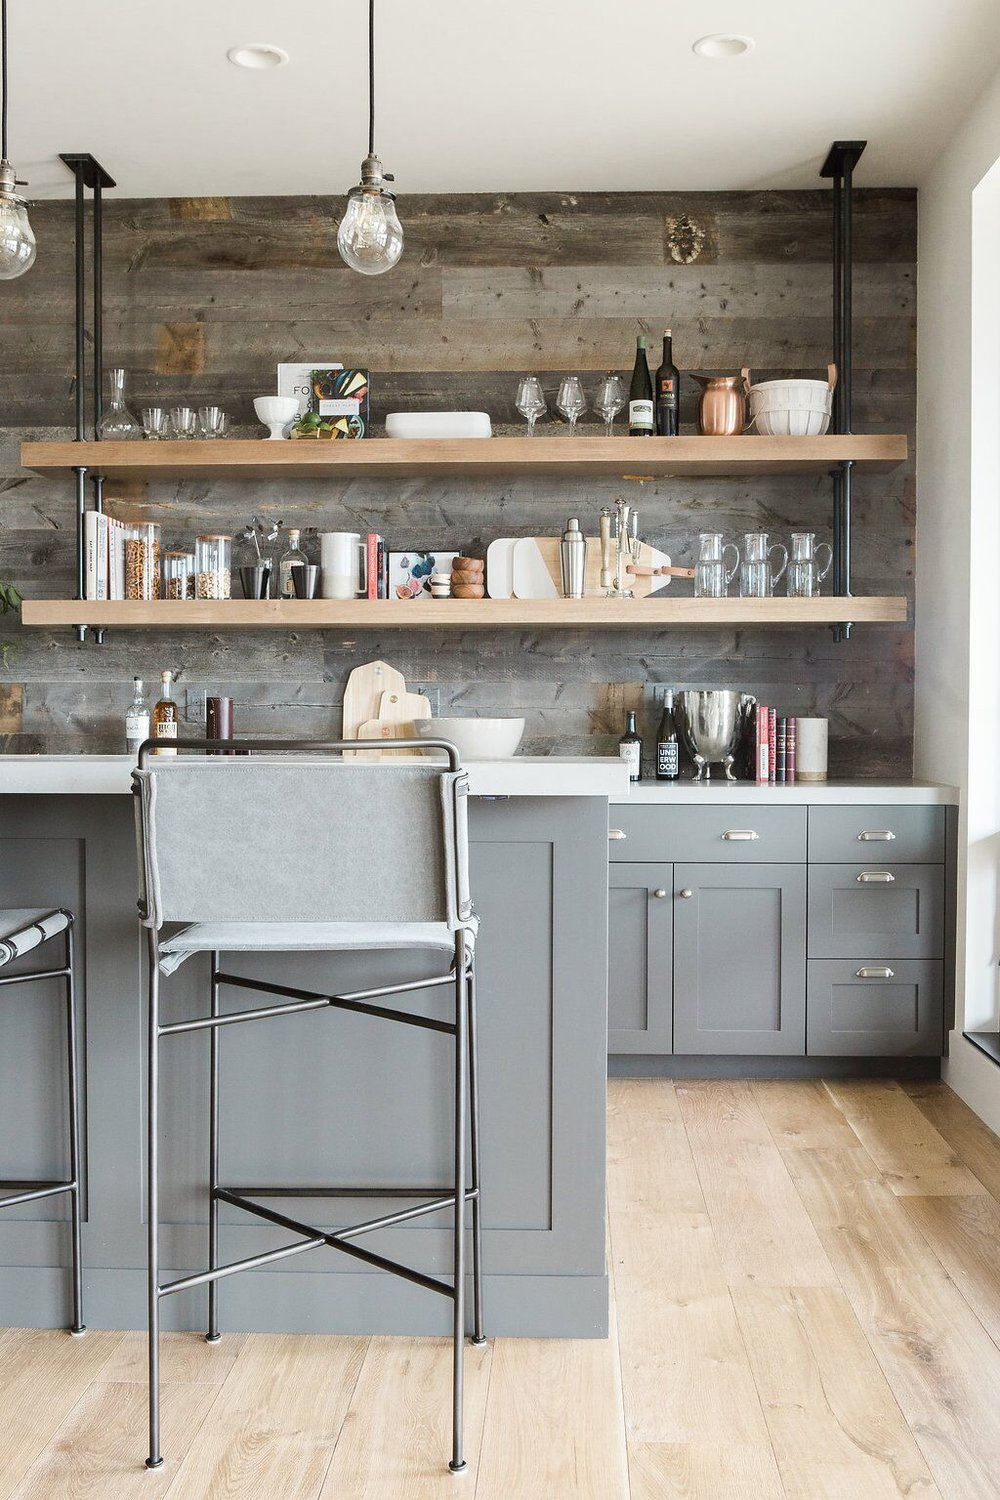 The Benefits Of Open Shelving In The Kitchen: Interior Trend: Open Shelving In Kitchens